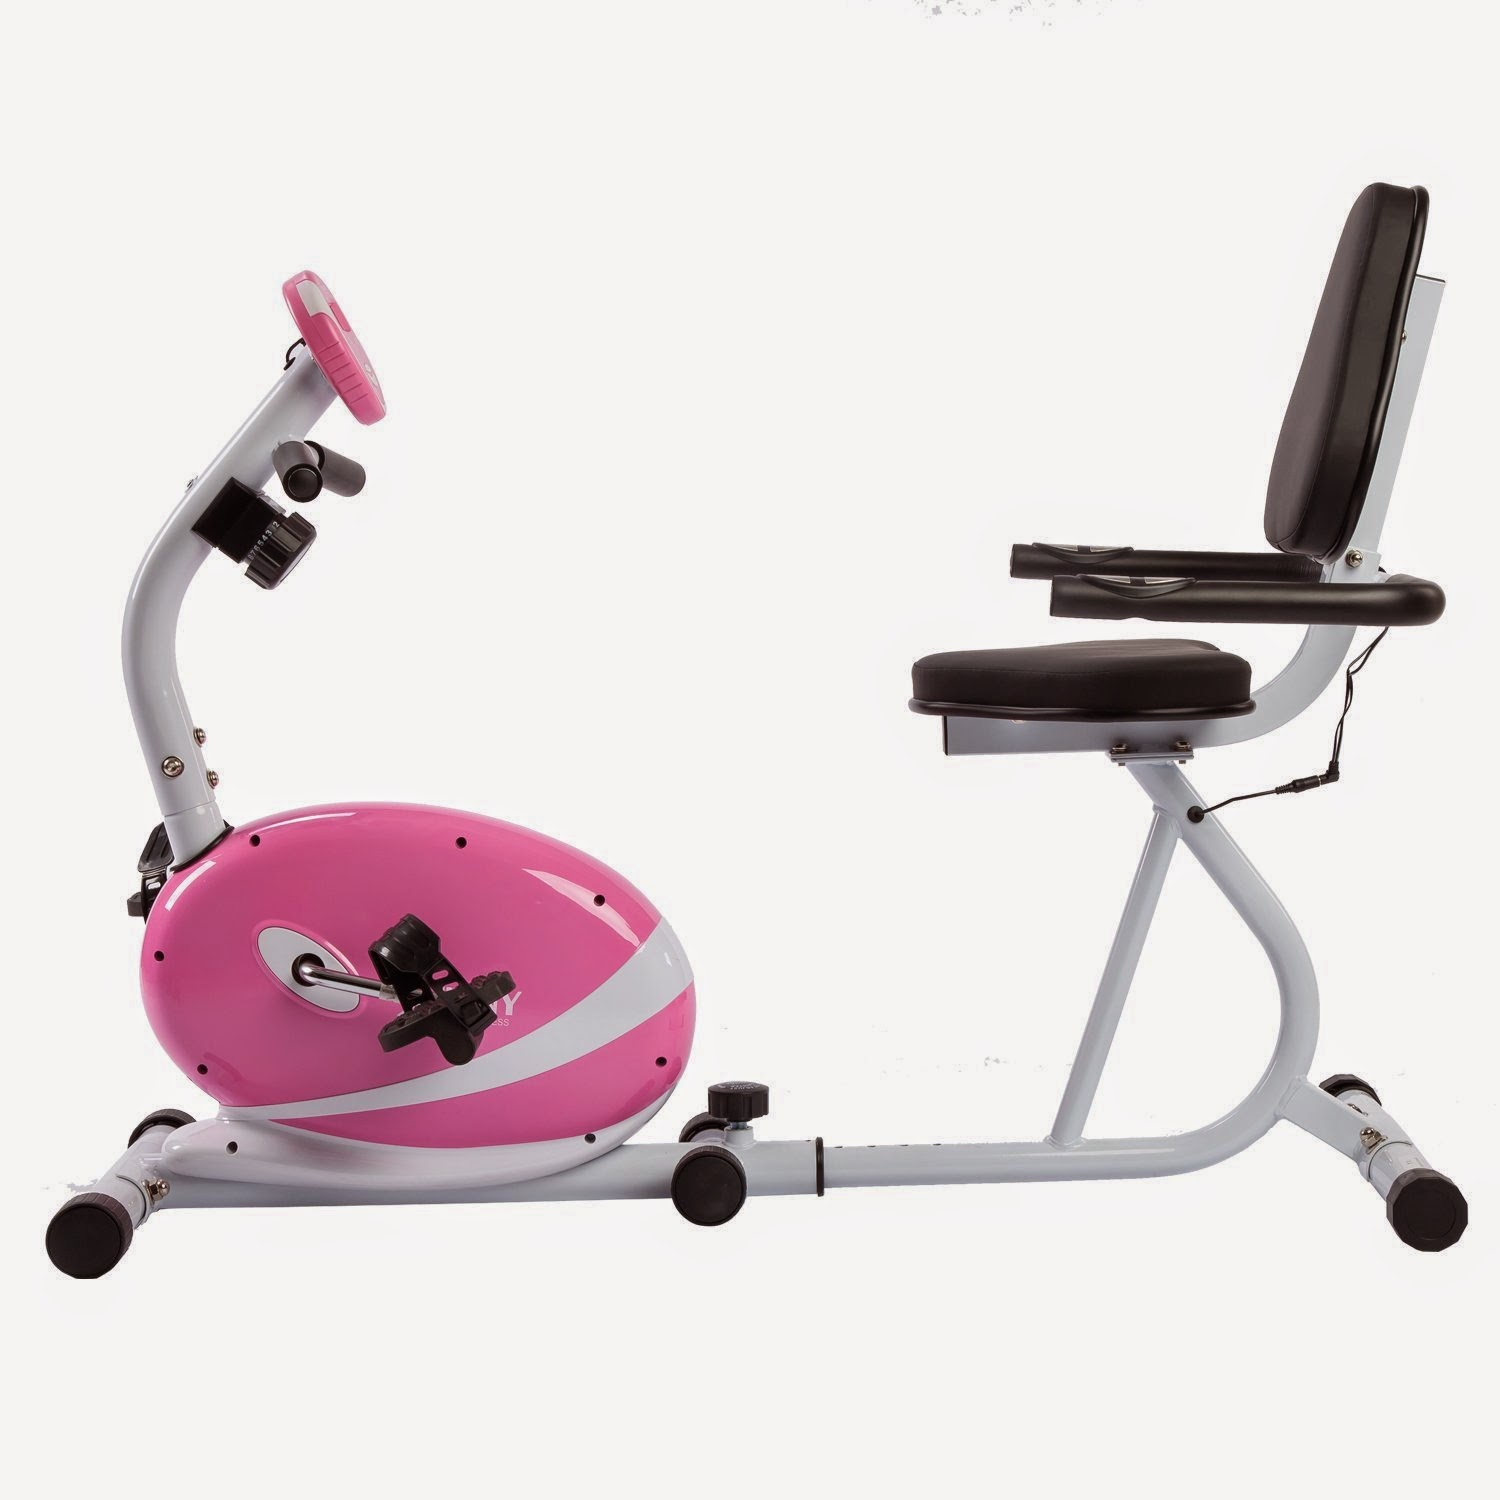 Sunny Health & Fitness Pink Magnetic Recumbent Bike P8400, review